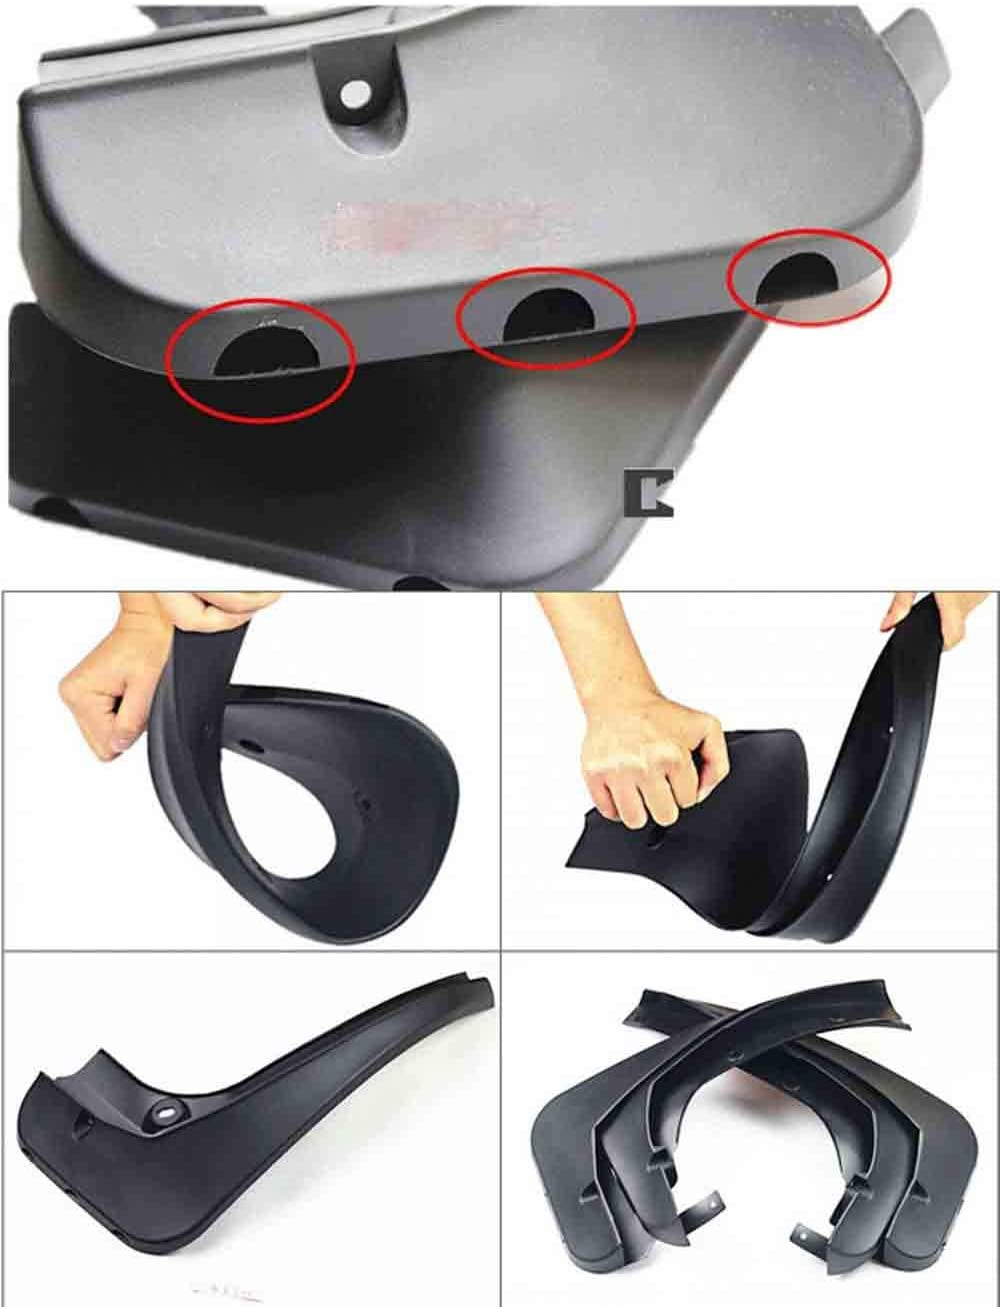 GGYSSY Front And Rear Splash Guard Compatible with Jaguar XFL XF XE Full Protection Mud Flaps All in One Splash Guard Kit,B